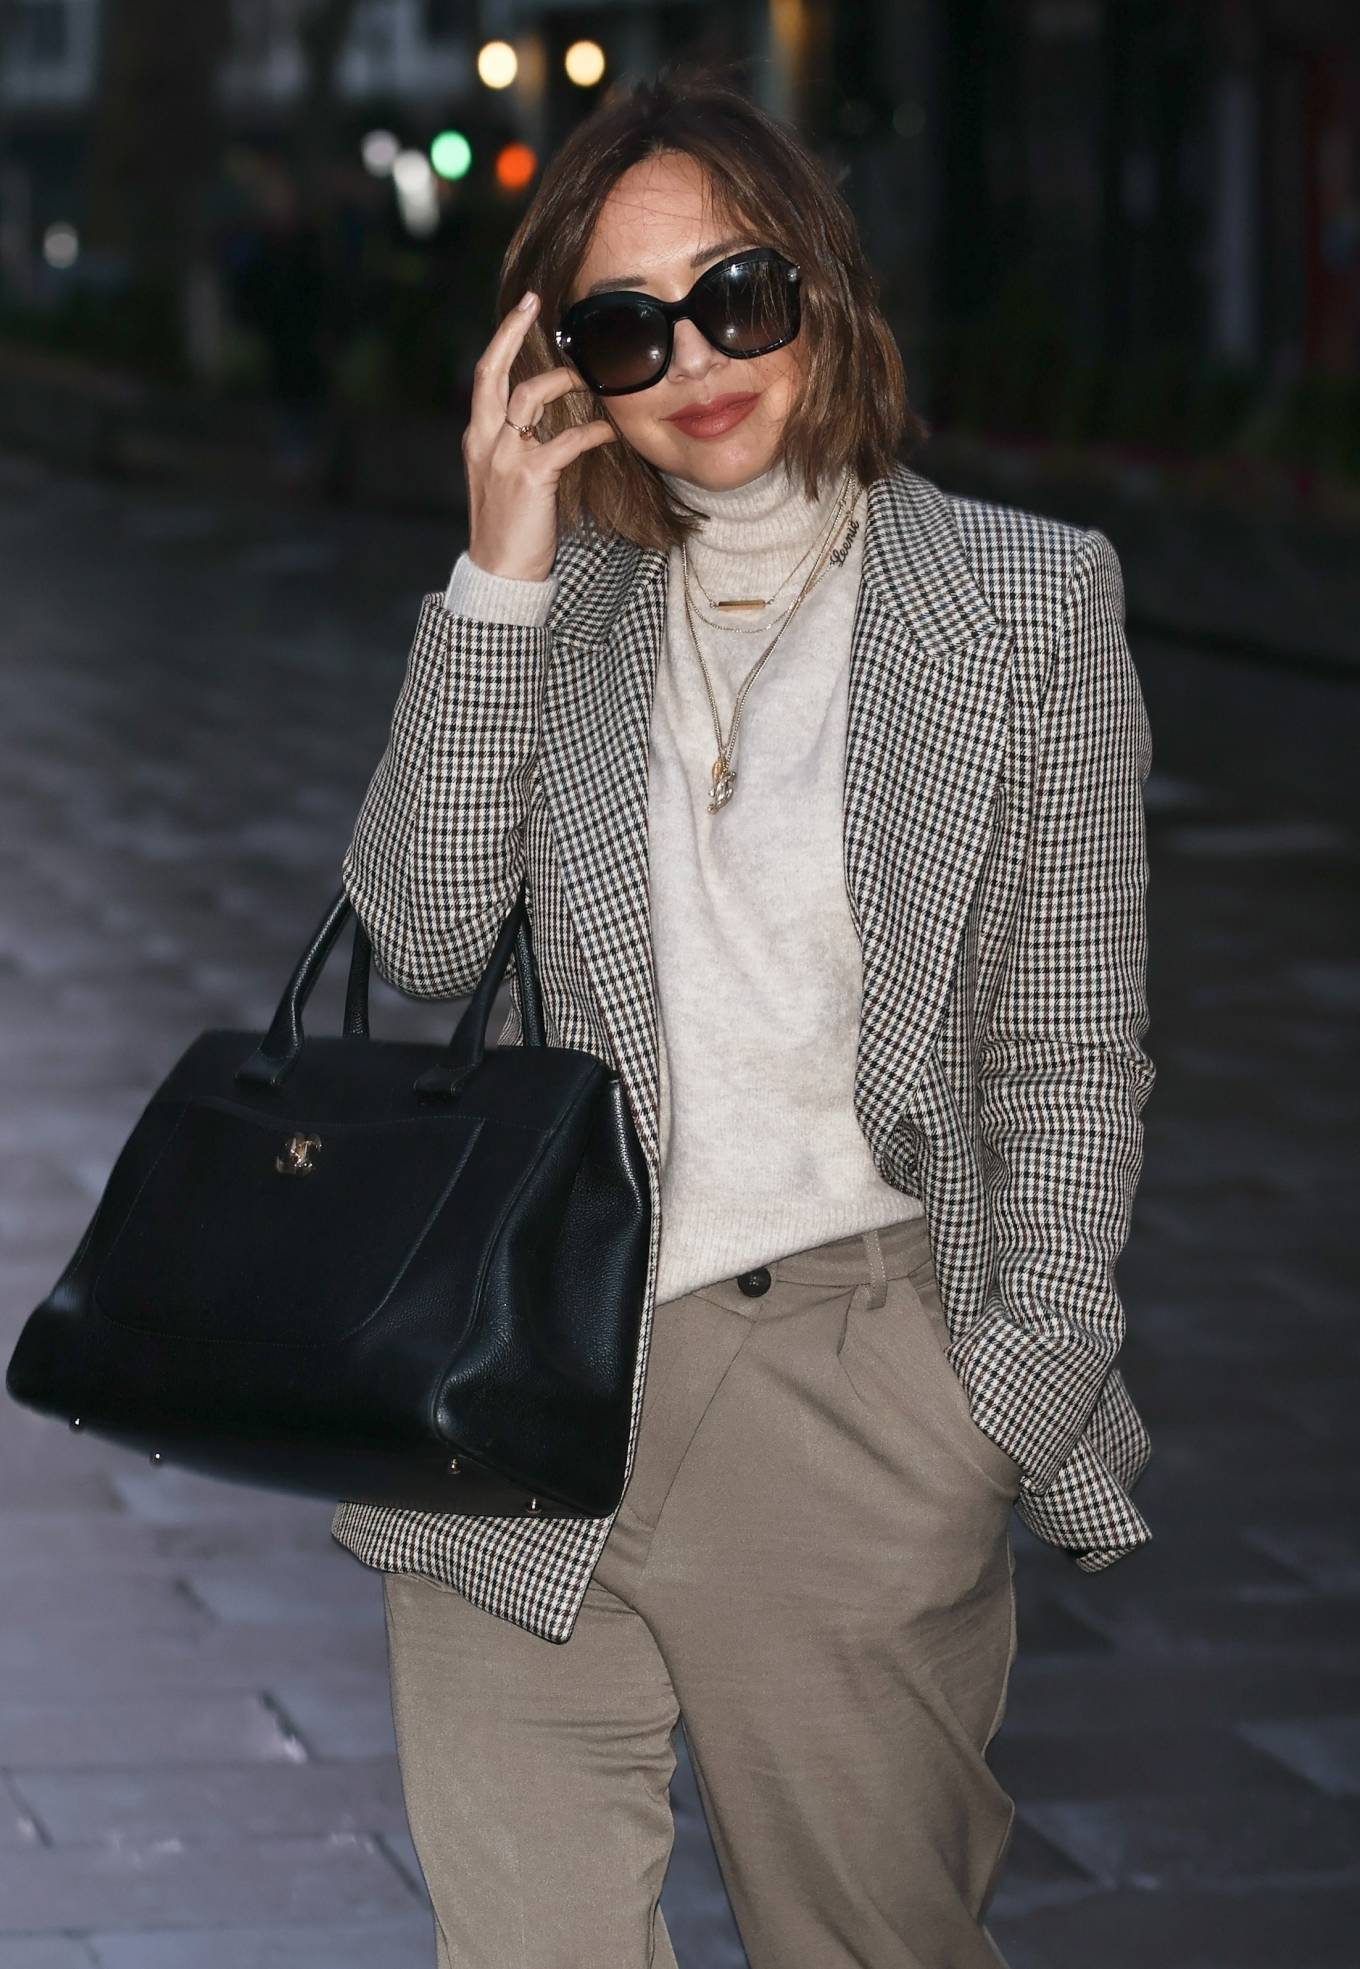 Myleene Klass - In a tweed jacket and trousers at Smooth radio in London